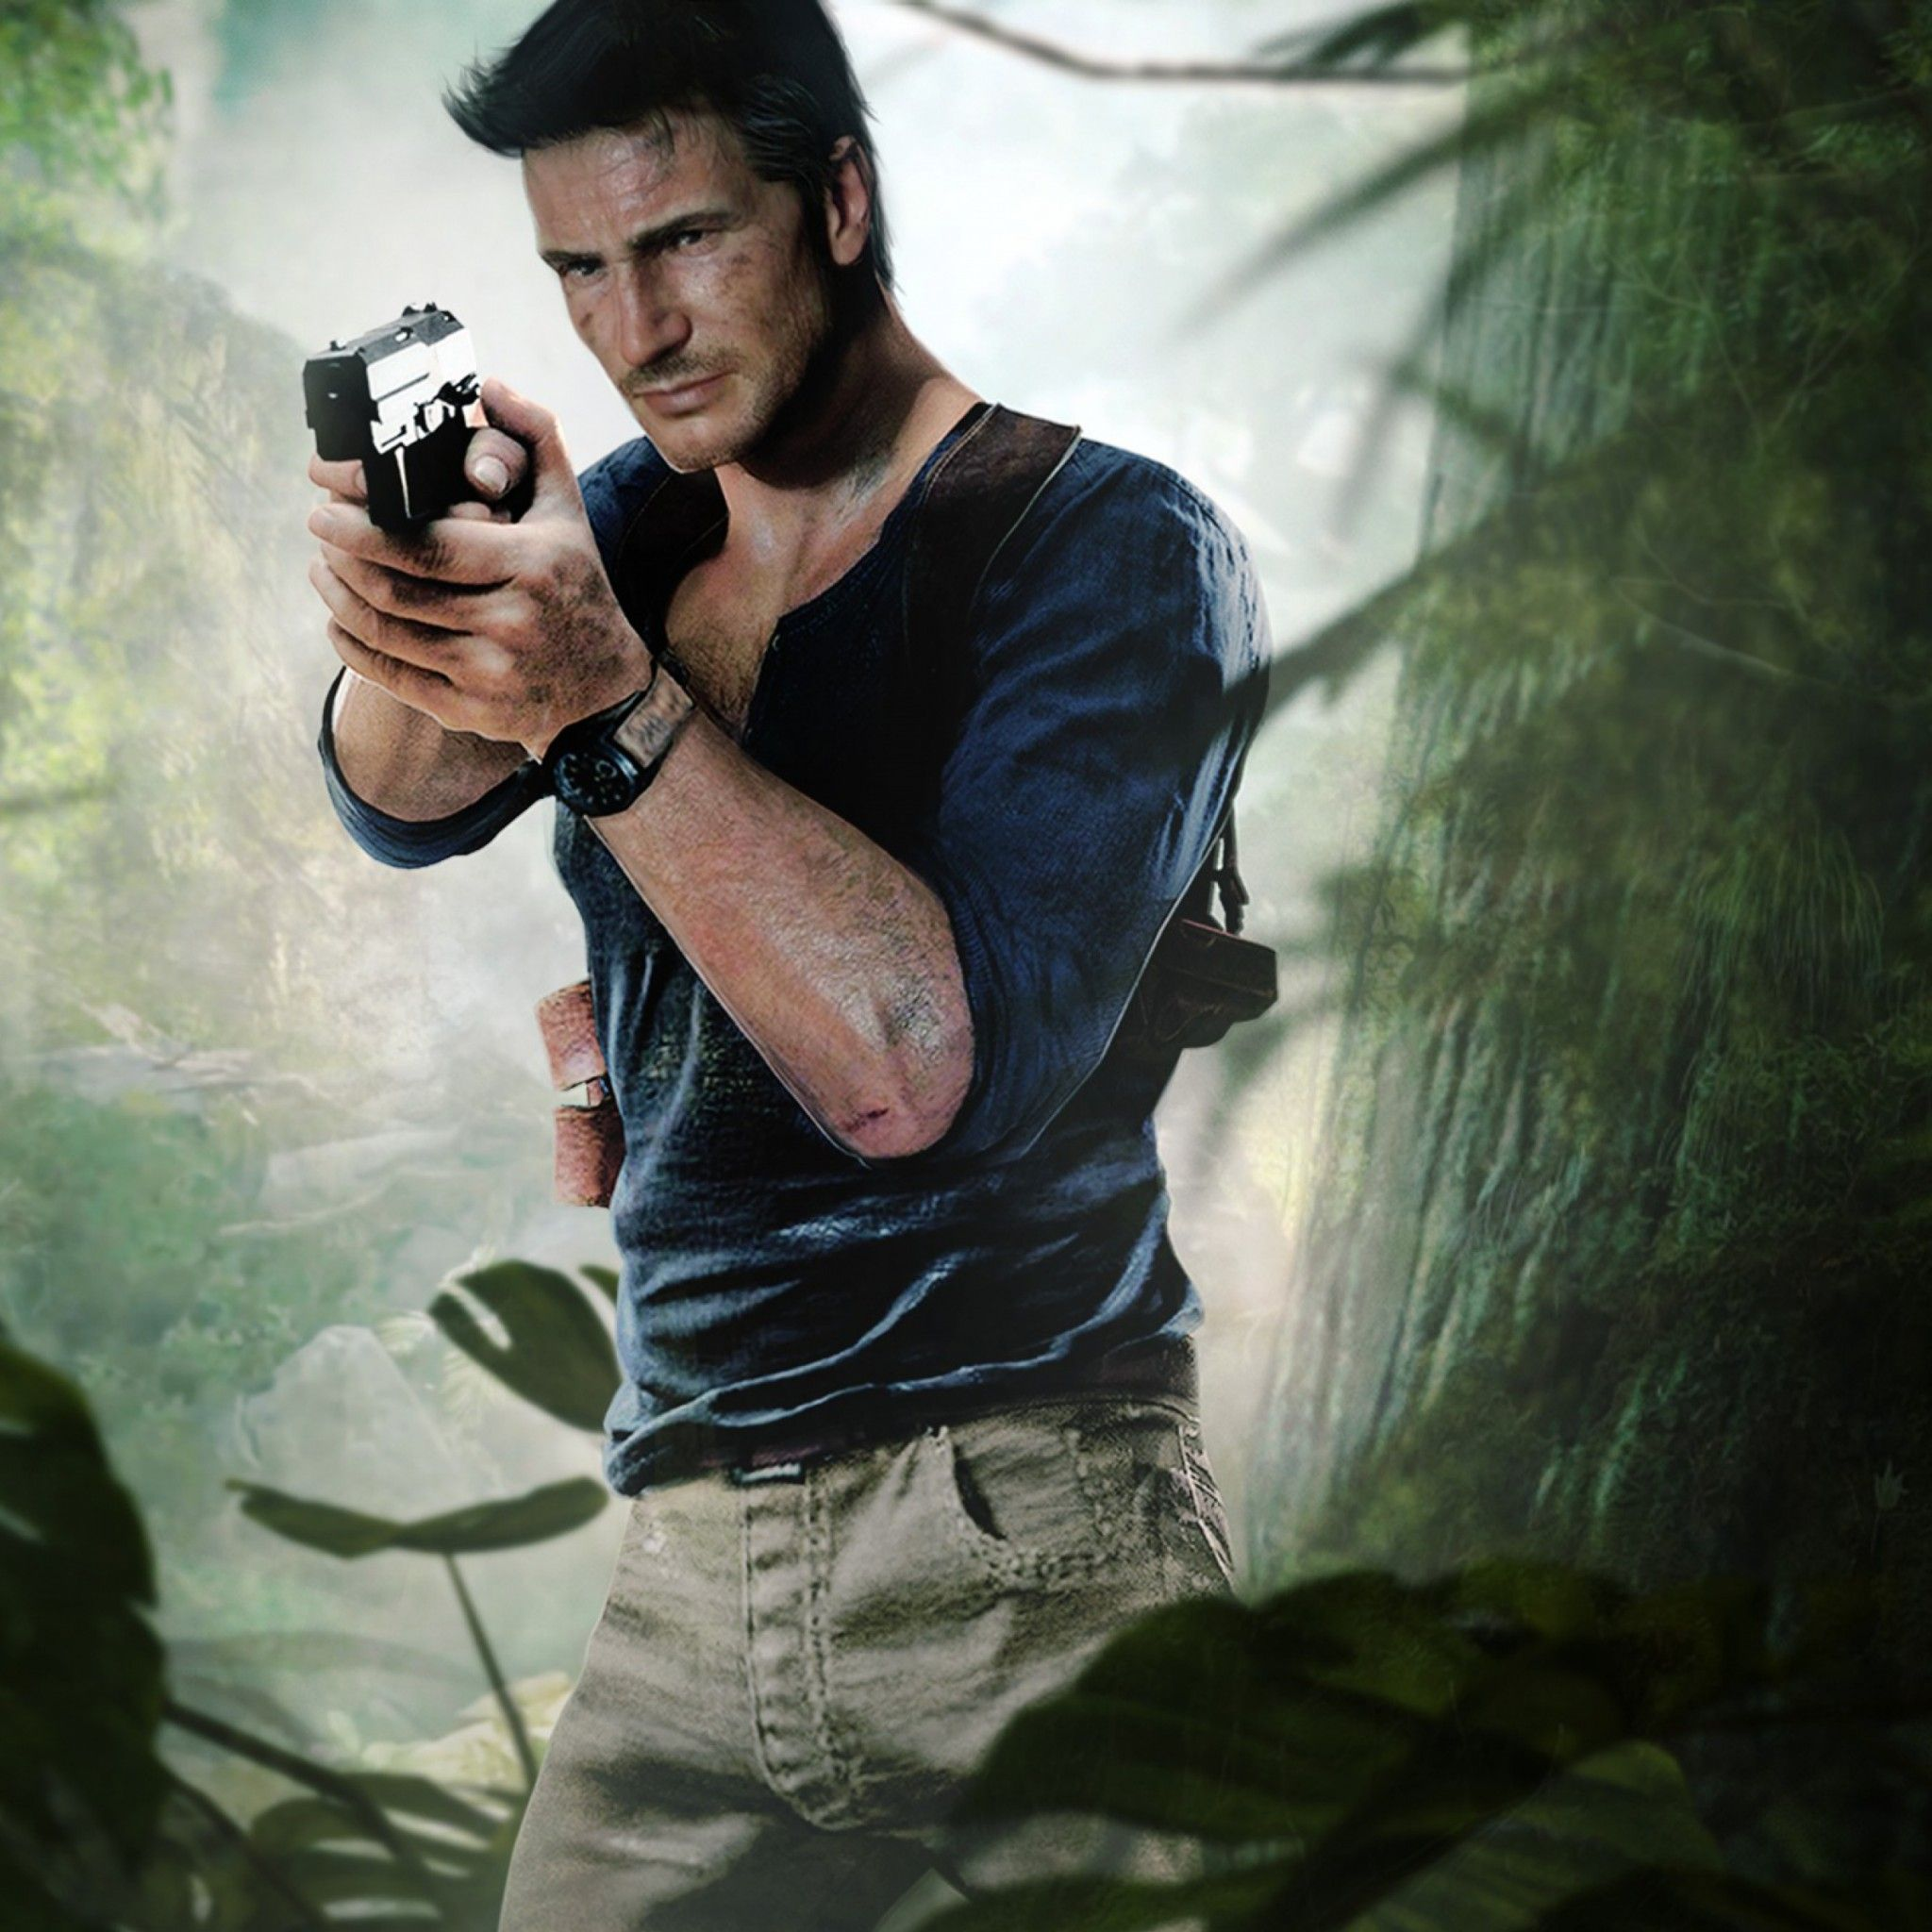 Naughty Dog Uncharted Tap To See More Wallpaper Of Uncharted 4 A Thief S End Game Mobile9 Uncharted Uncharted A Thief S End A Thief S End